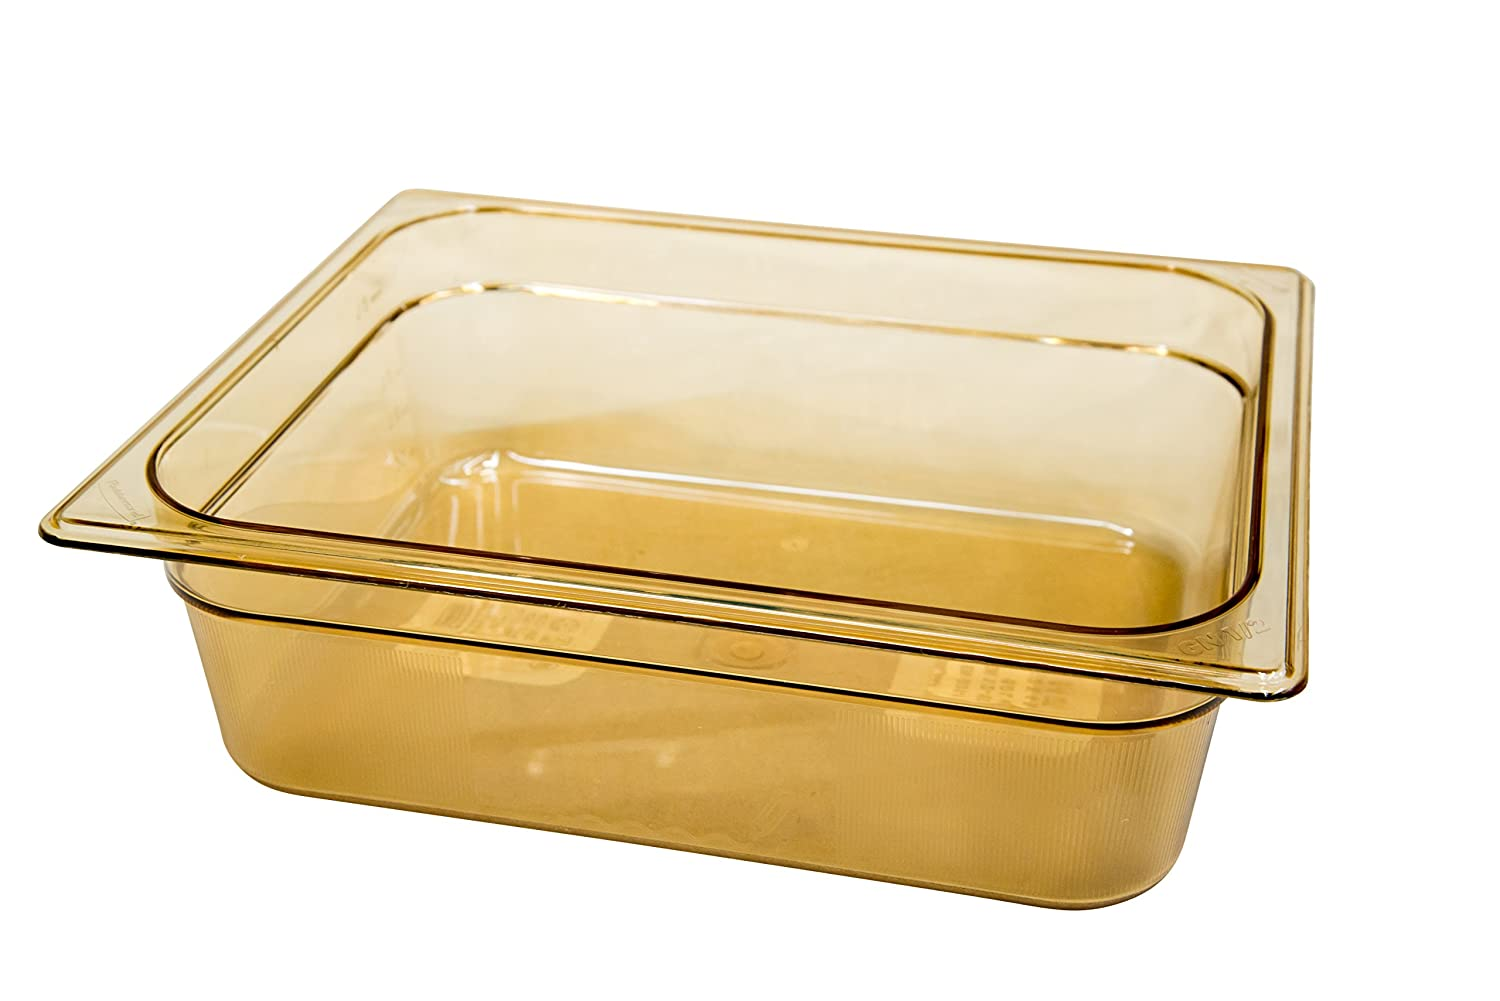 Rubbermaid Commercial Products Hot Food Insert Pan for Restaurants/Kitchens/Cafeterias, 1/2 Size, 4 Inches Deep, Amber (FG224P00AMBR)